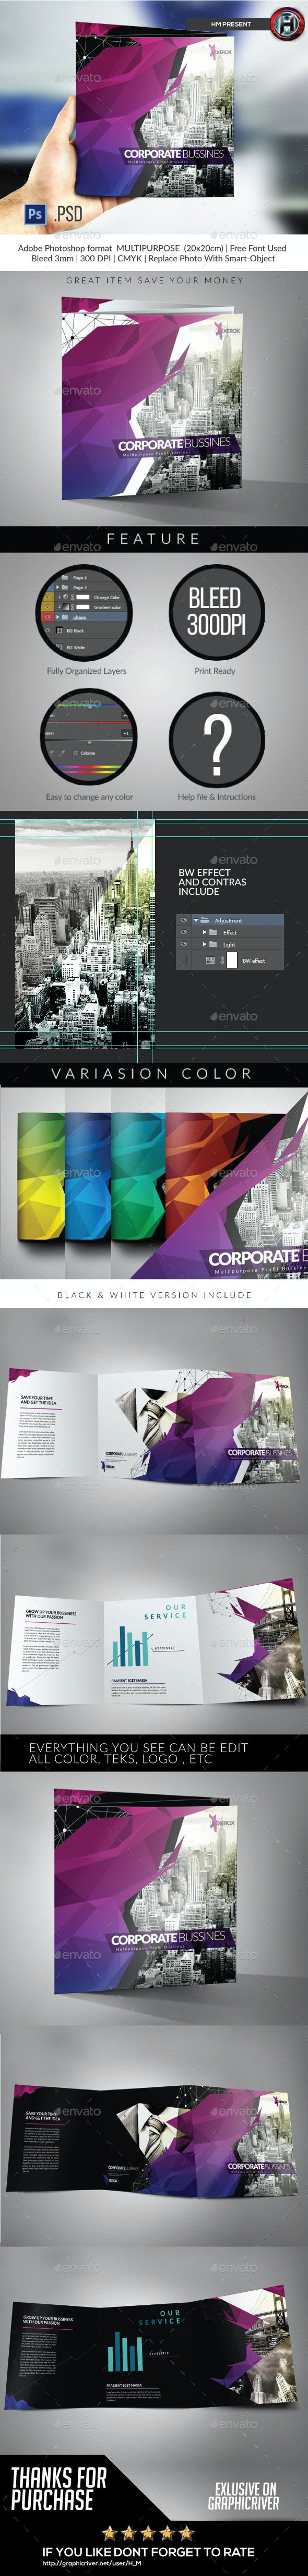 Square Modern Architecture Trifold - Corporate Brochures